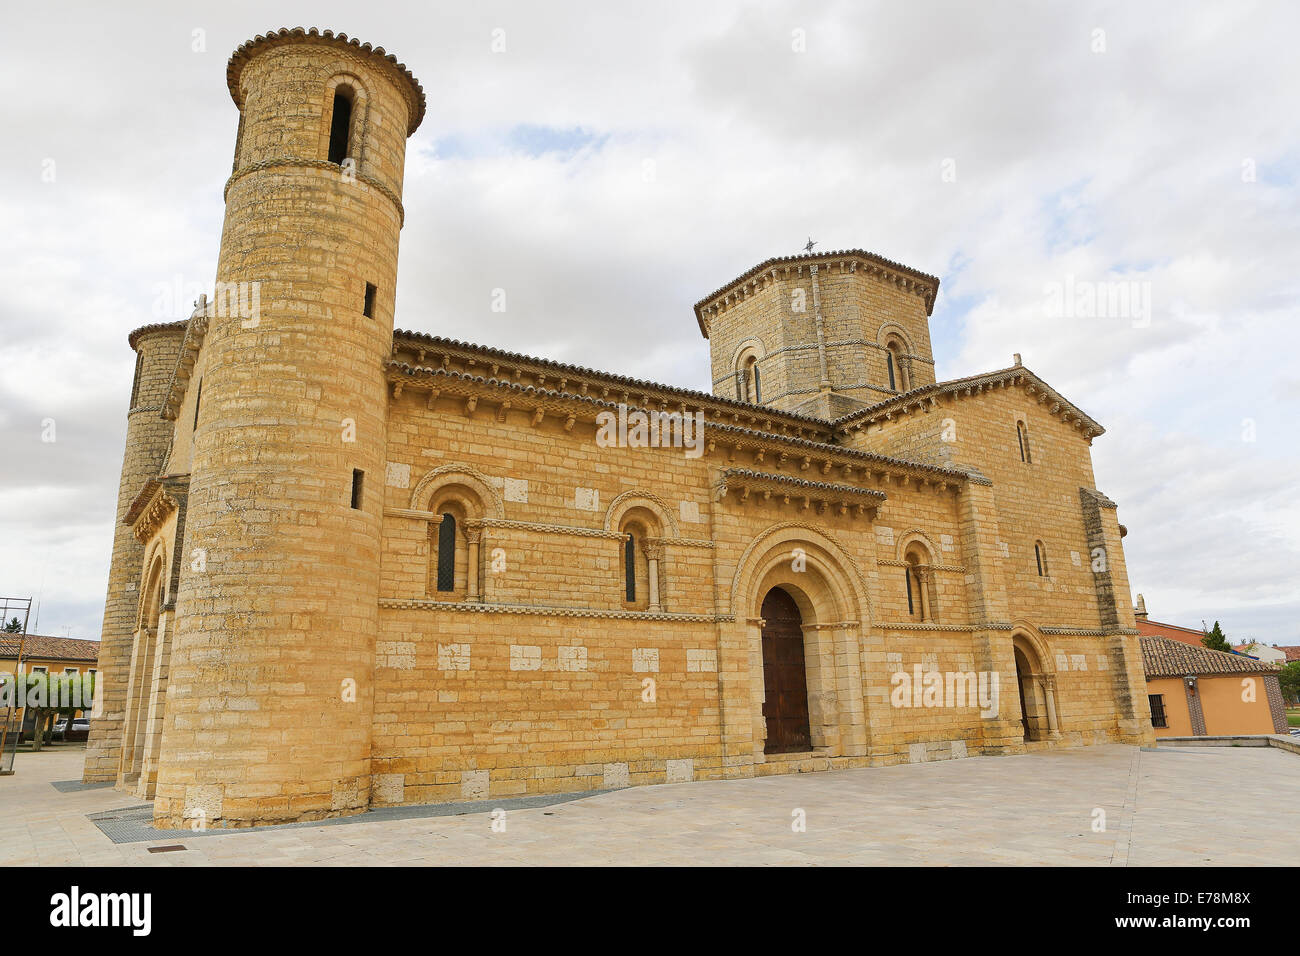 Famous Romanesque church of St Martin of Tours (11th Century) in Fromista, Castille and Leon, Spain. - Stock Image